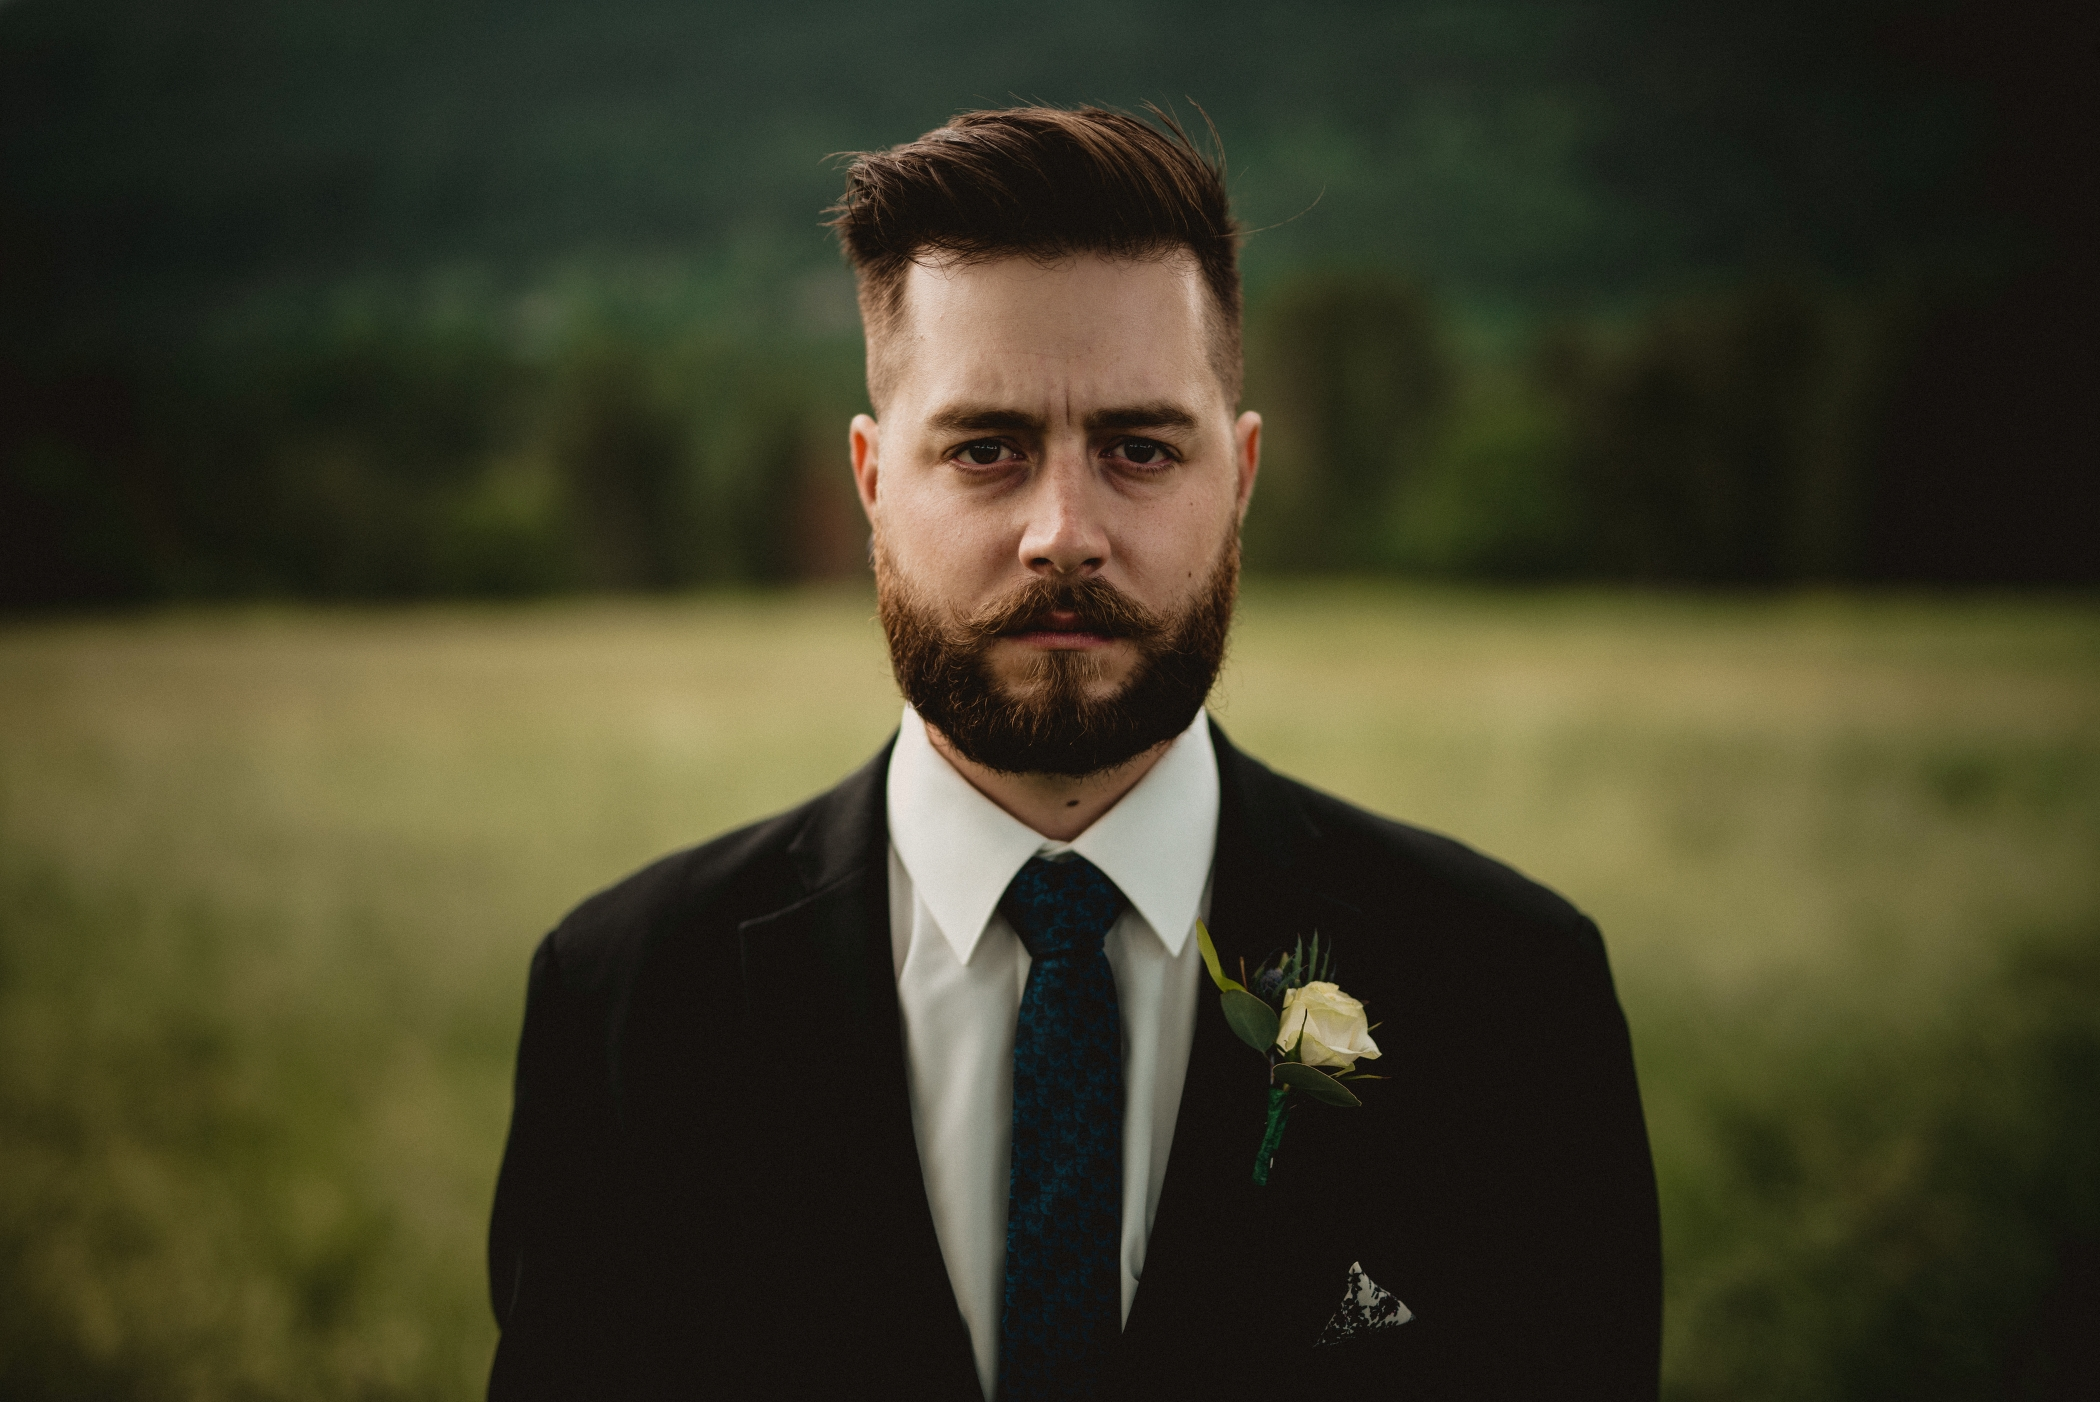 Moody Wedding and elopement photographer Vancouver BC1.jpg